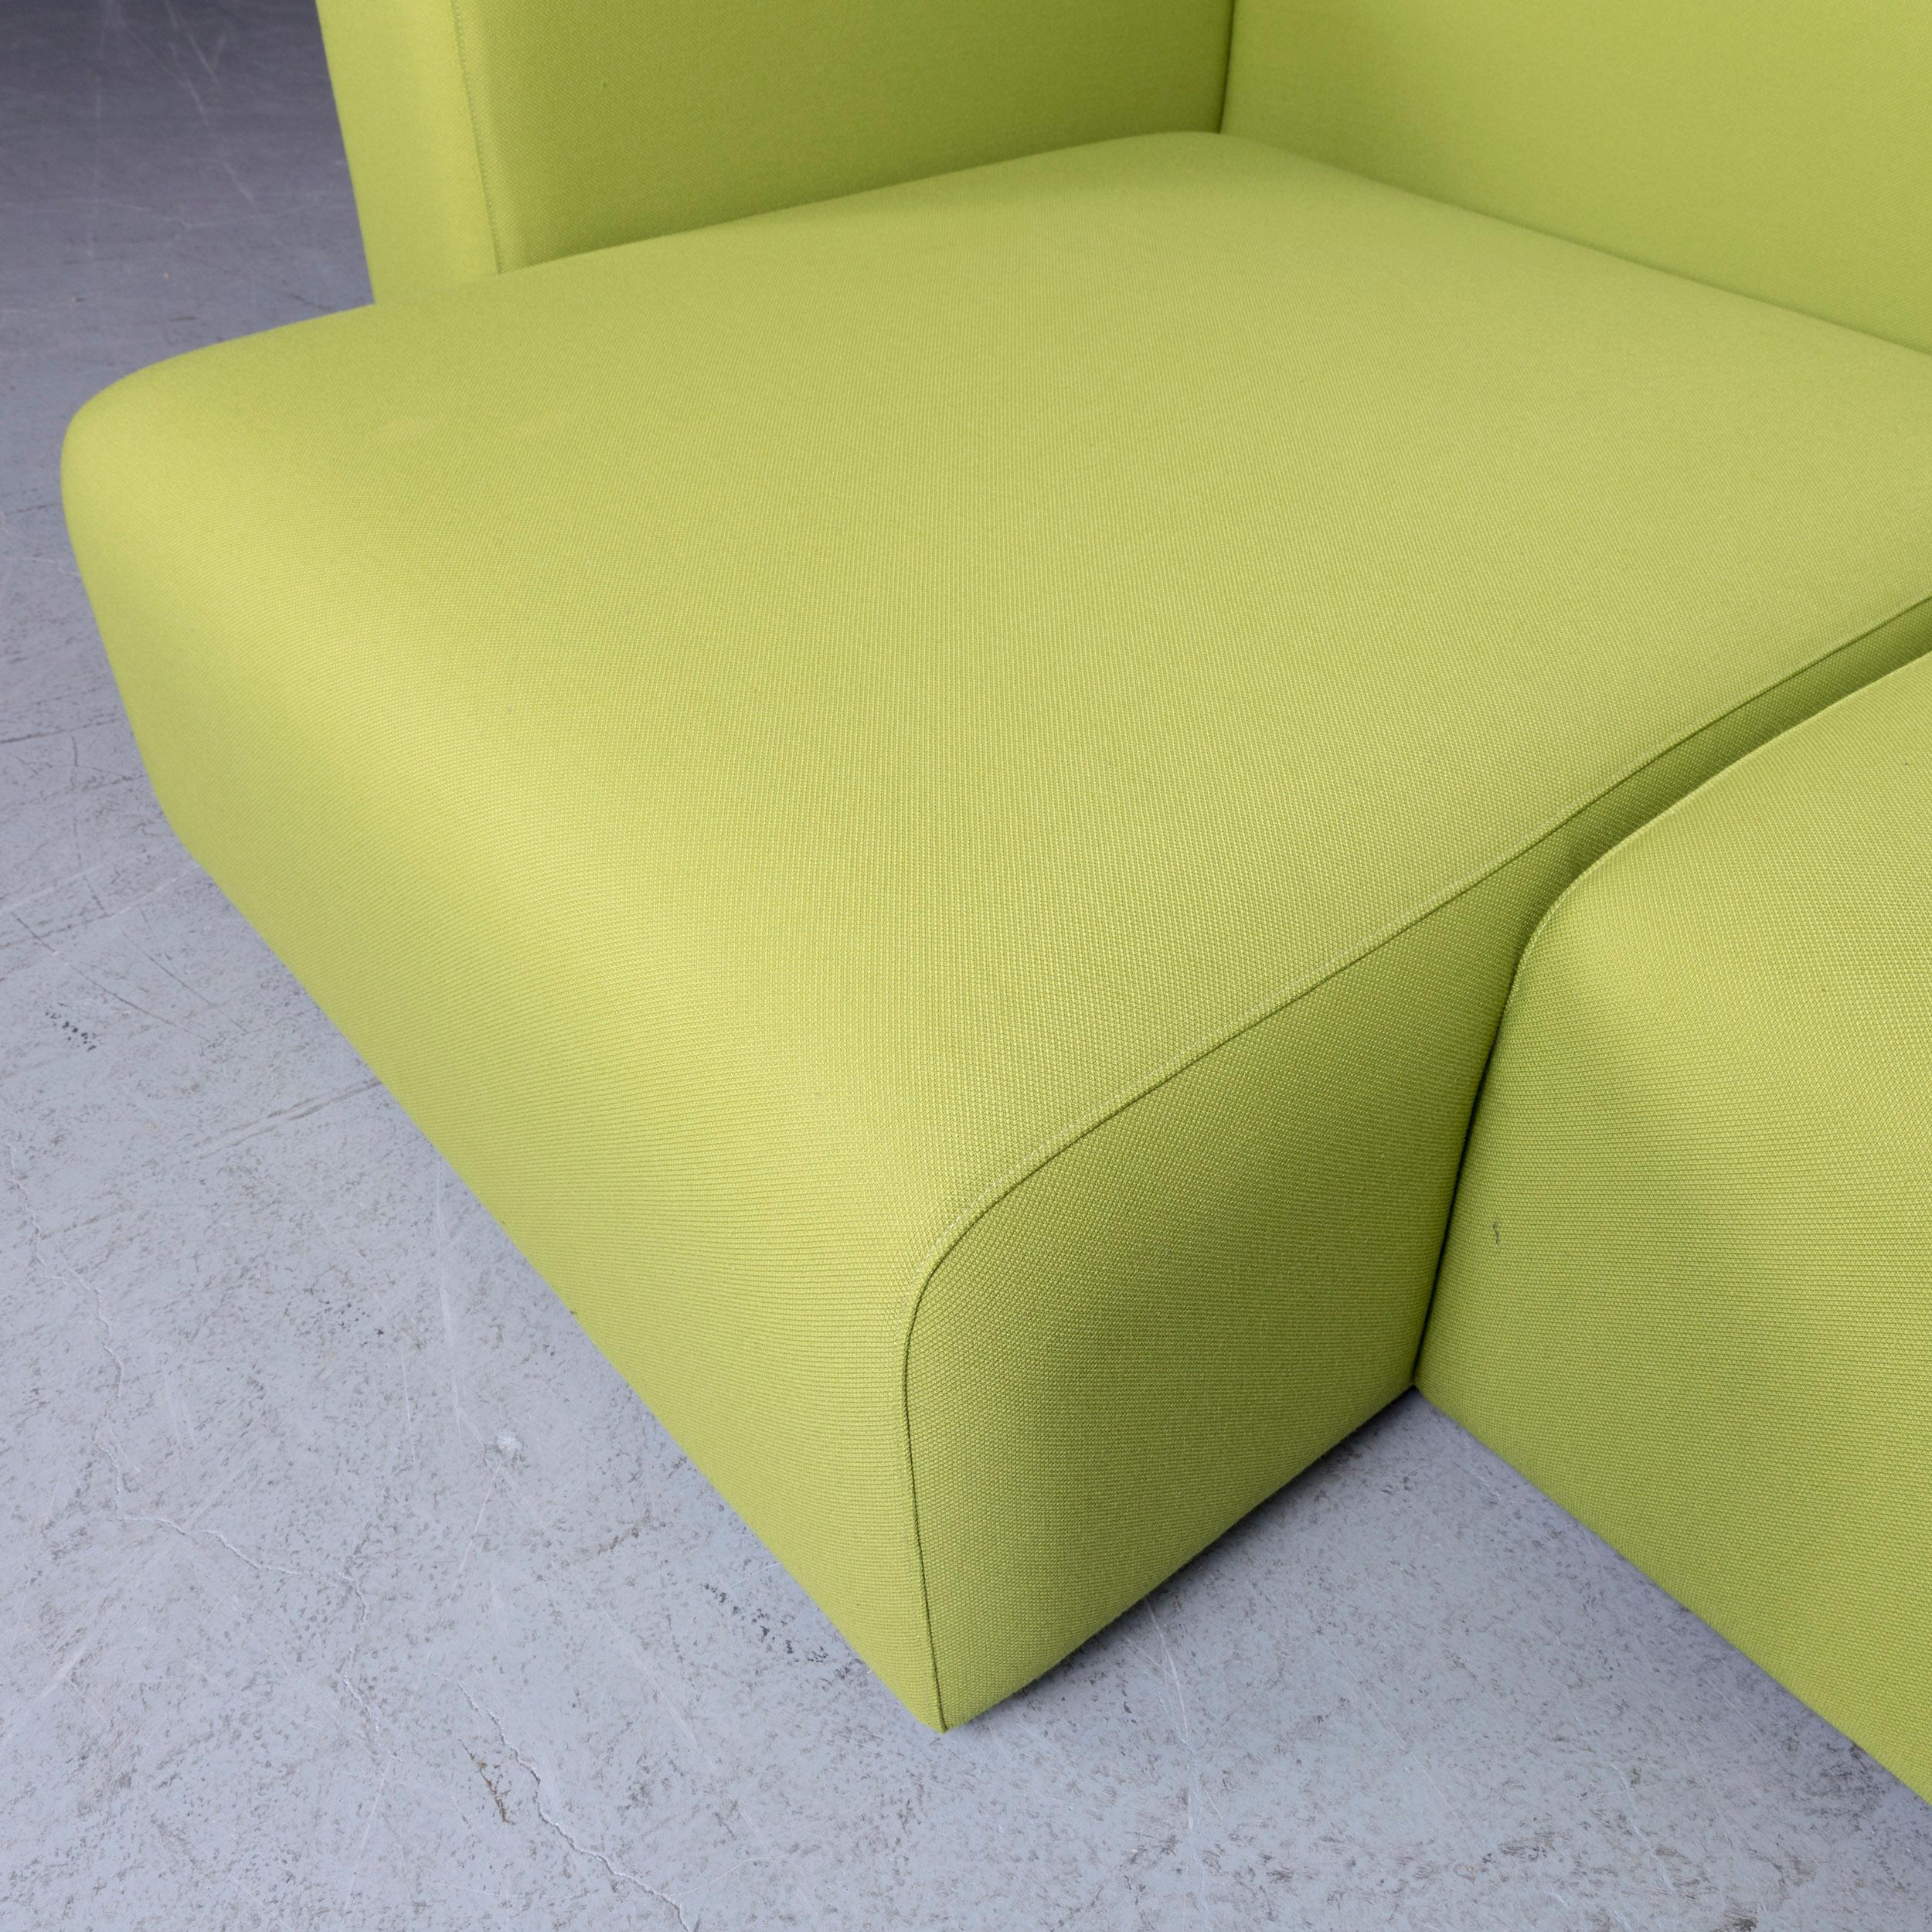 Pleasant Hay Mags Designer Fabric Sofa Green Corner Couch At 1Stdibs Pabps2019 Chair Design Images Pabps2019Com